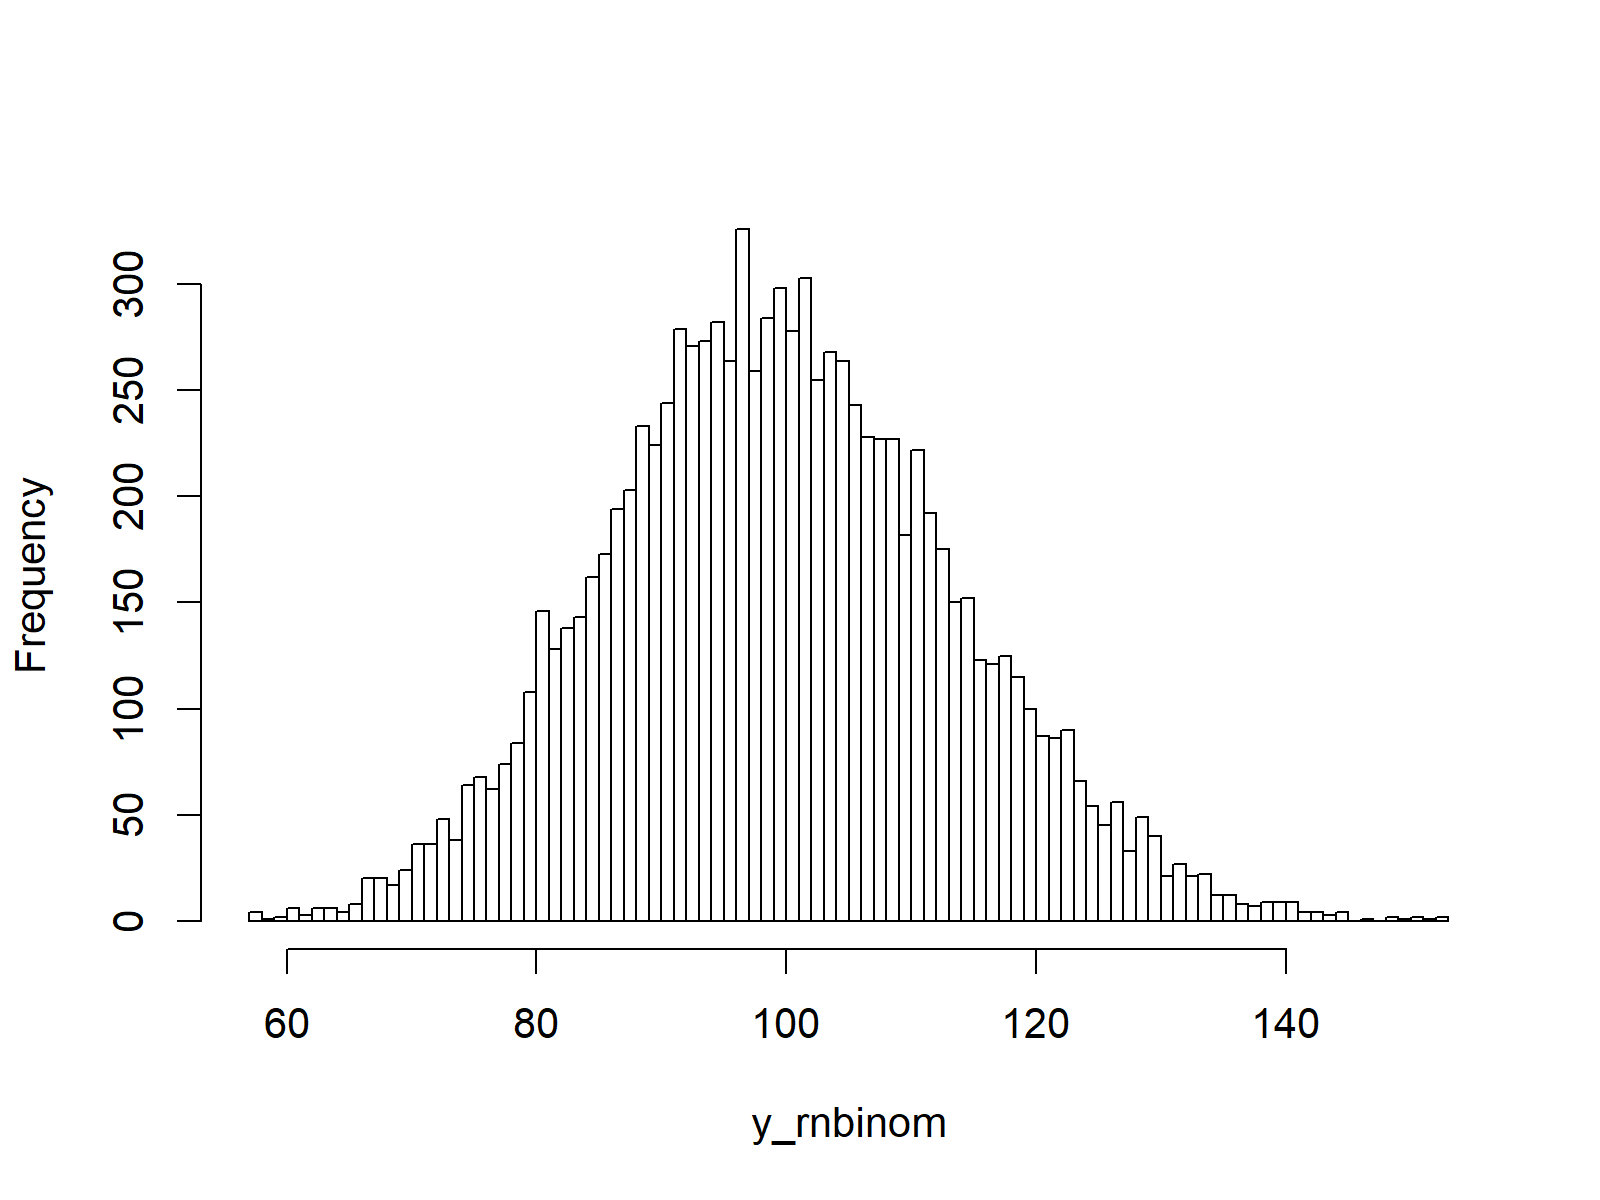 random numbers based on negative binomial distribution plot in r